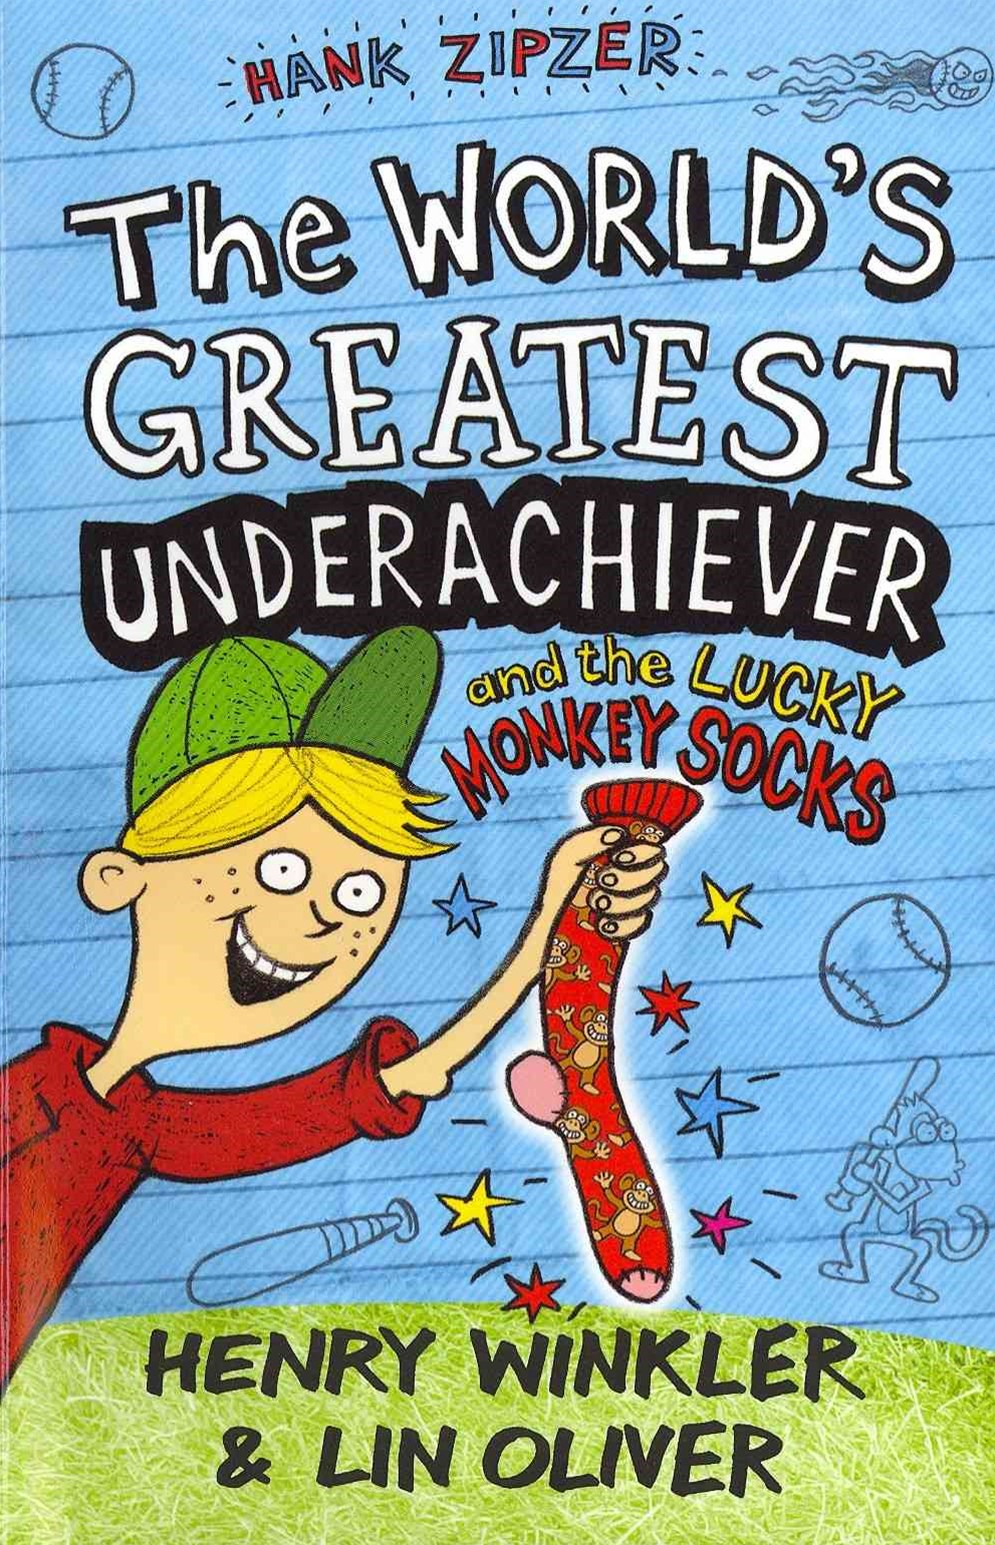 Hank Zipzer 4: The World's Greatest Underachiever and the Lucky Monkey Socks